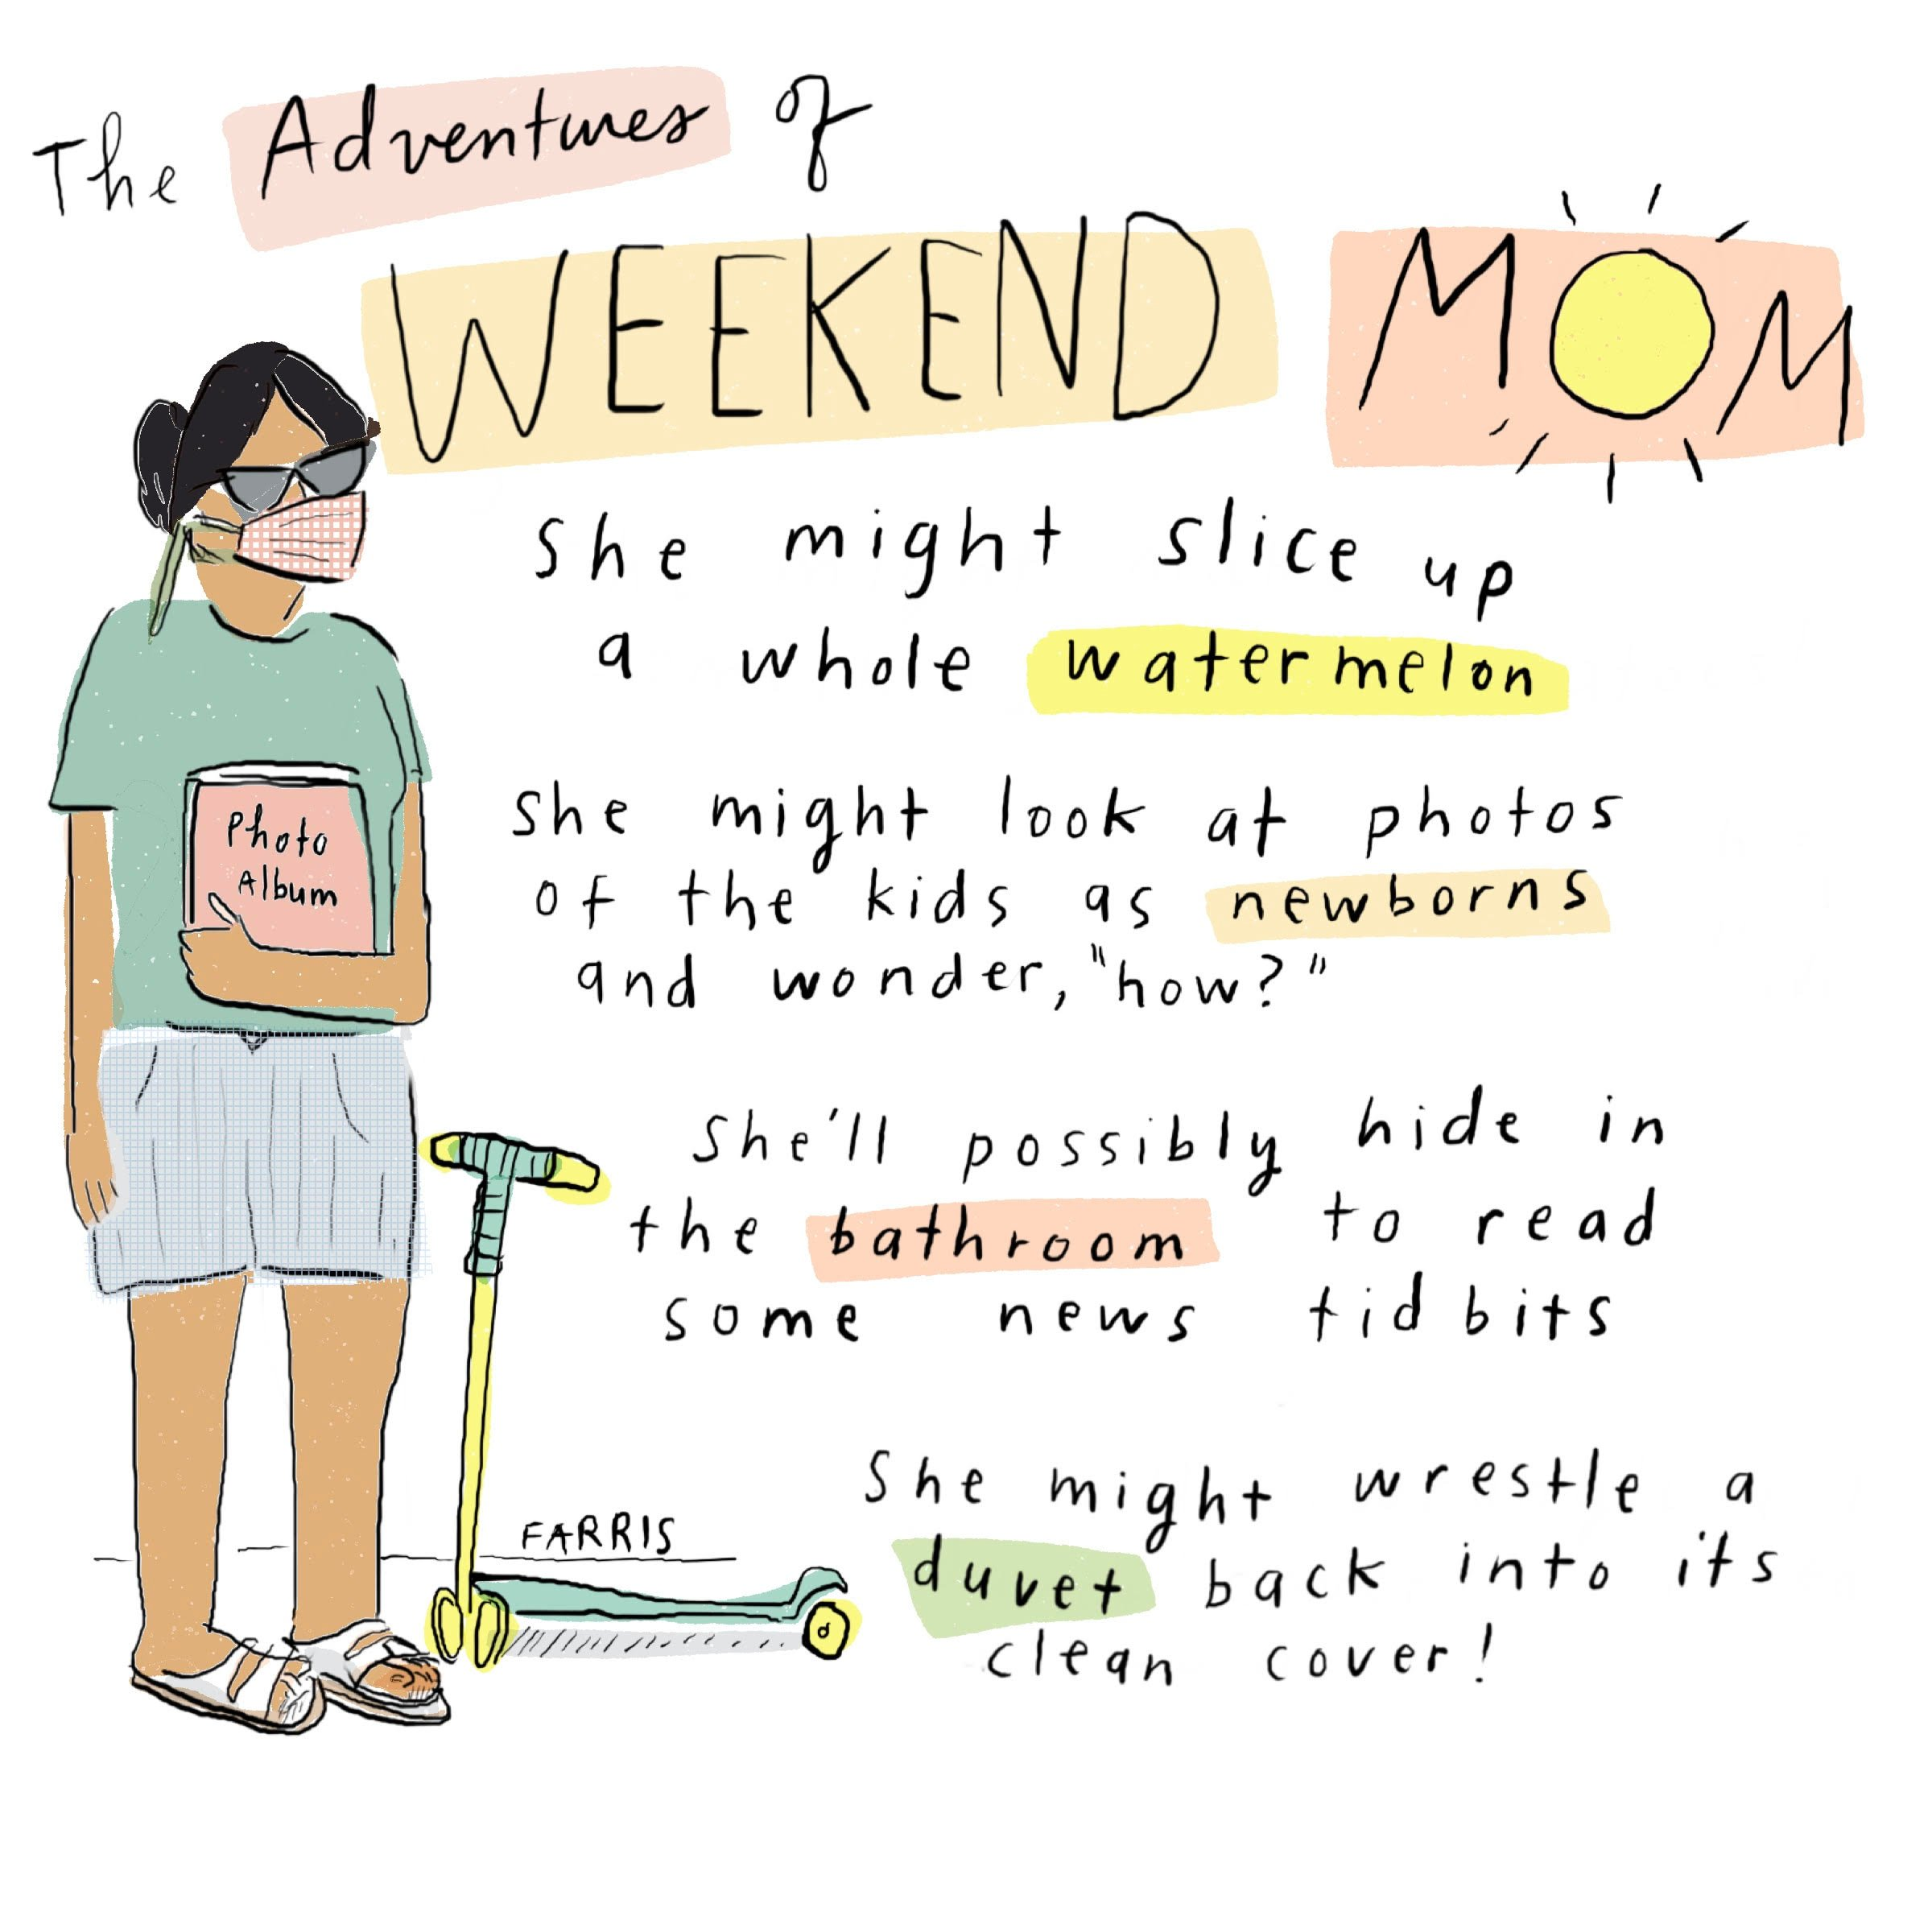 weekend mom comic by grace farris